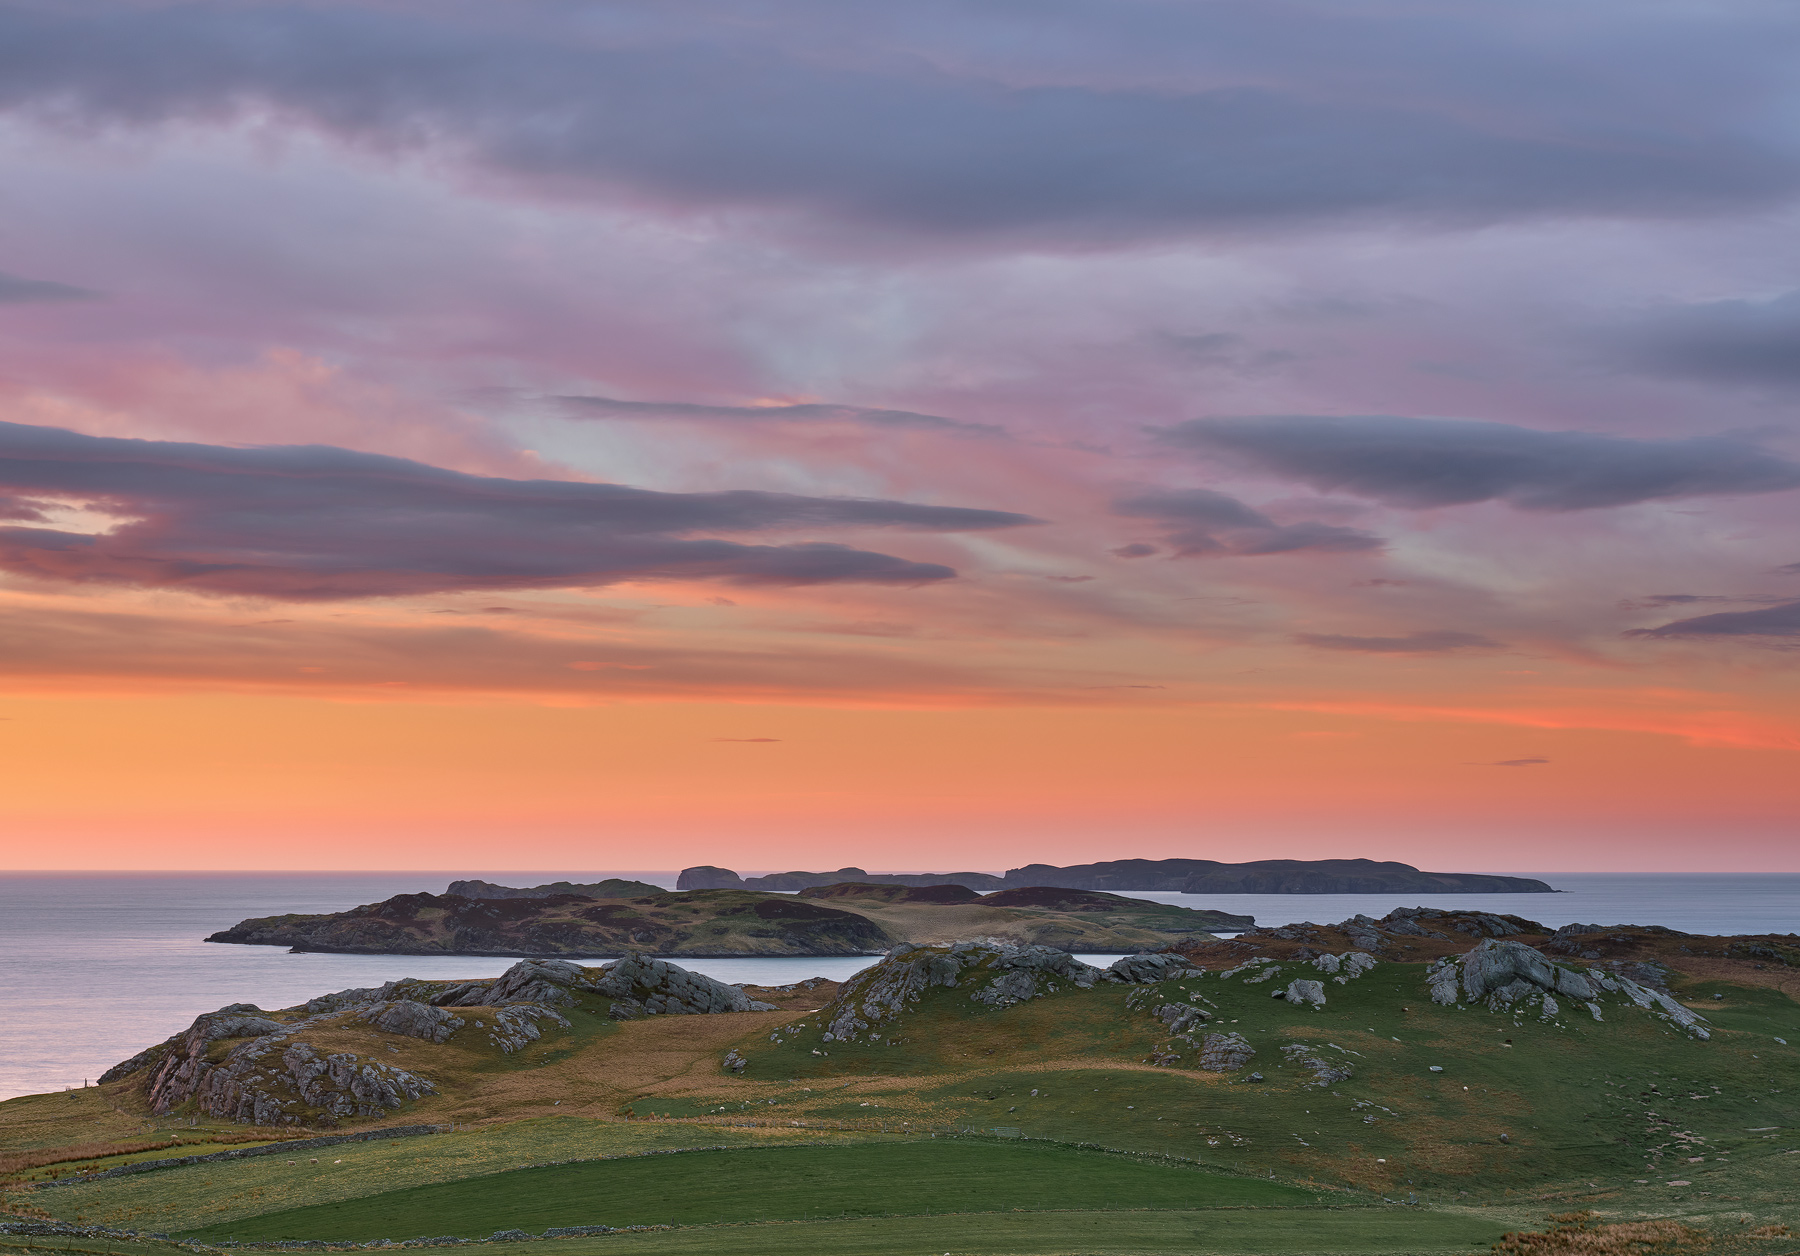 Stunning colours at sunset over Rabbit Island as seen from the viewpoint above Talmine bay in Sutherland.